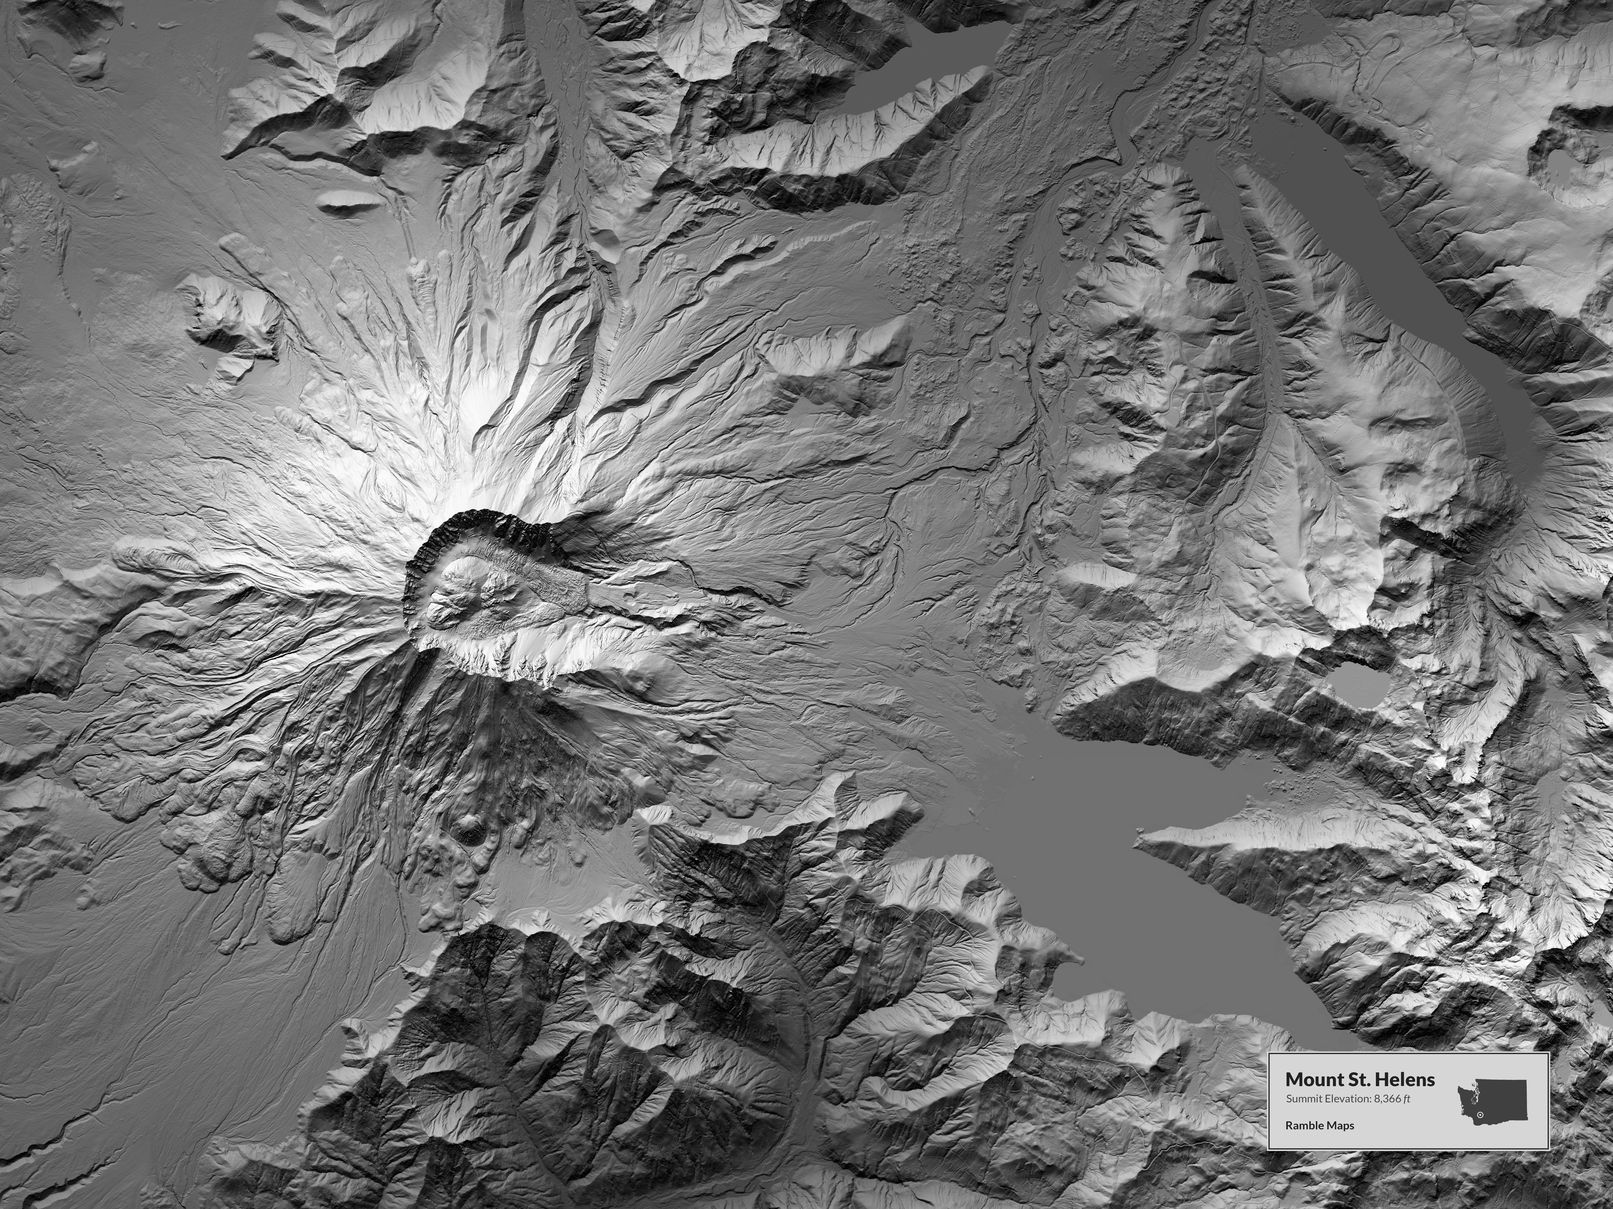 Map of Mount St. Helens